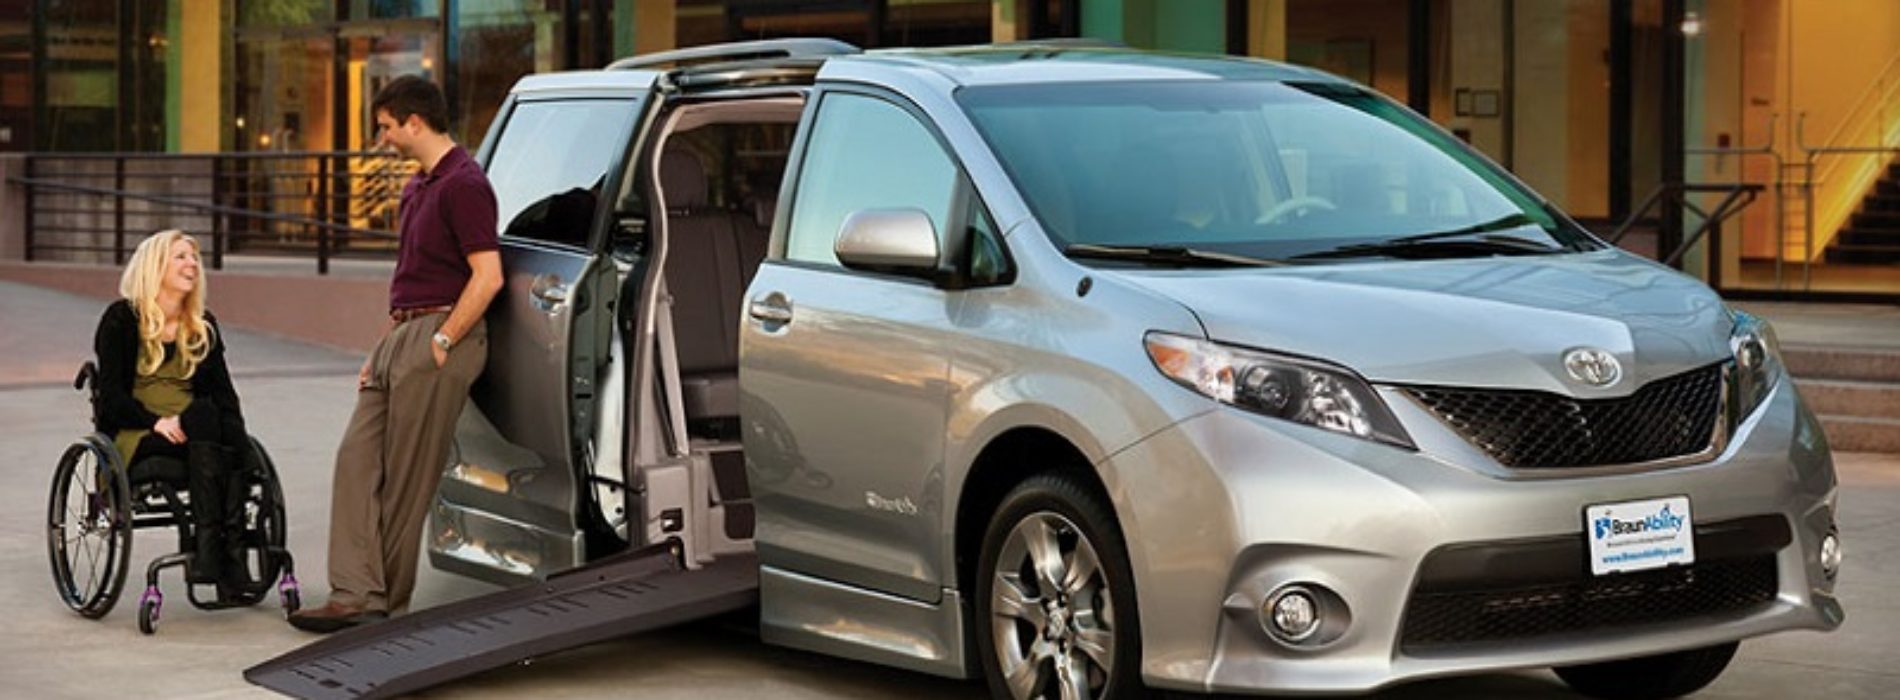 8 things to consider when renting a wheelchair accessible vehicle